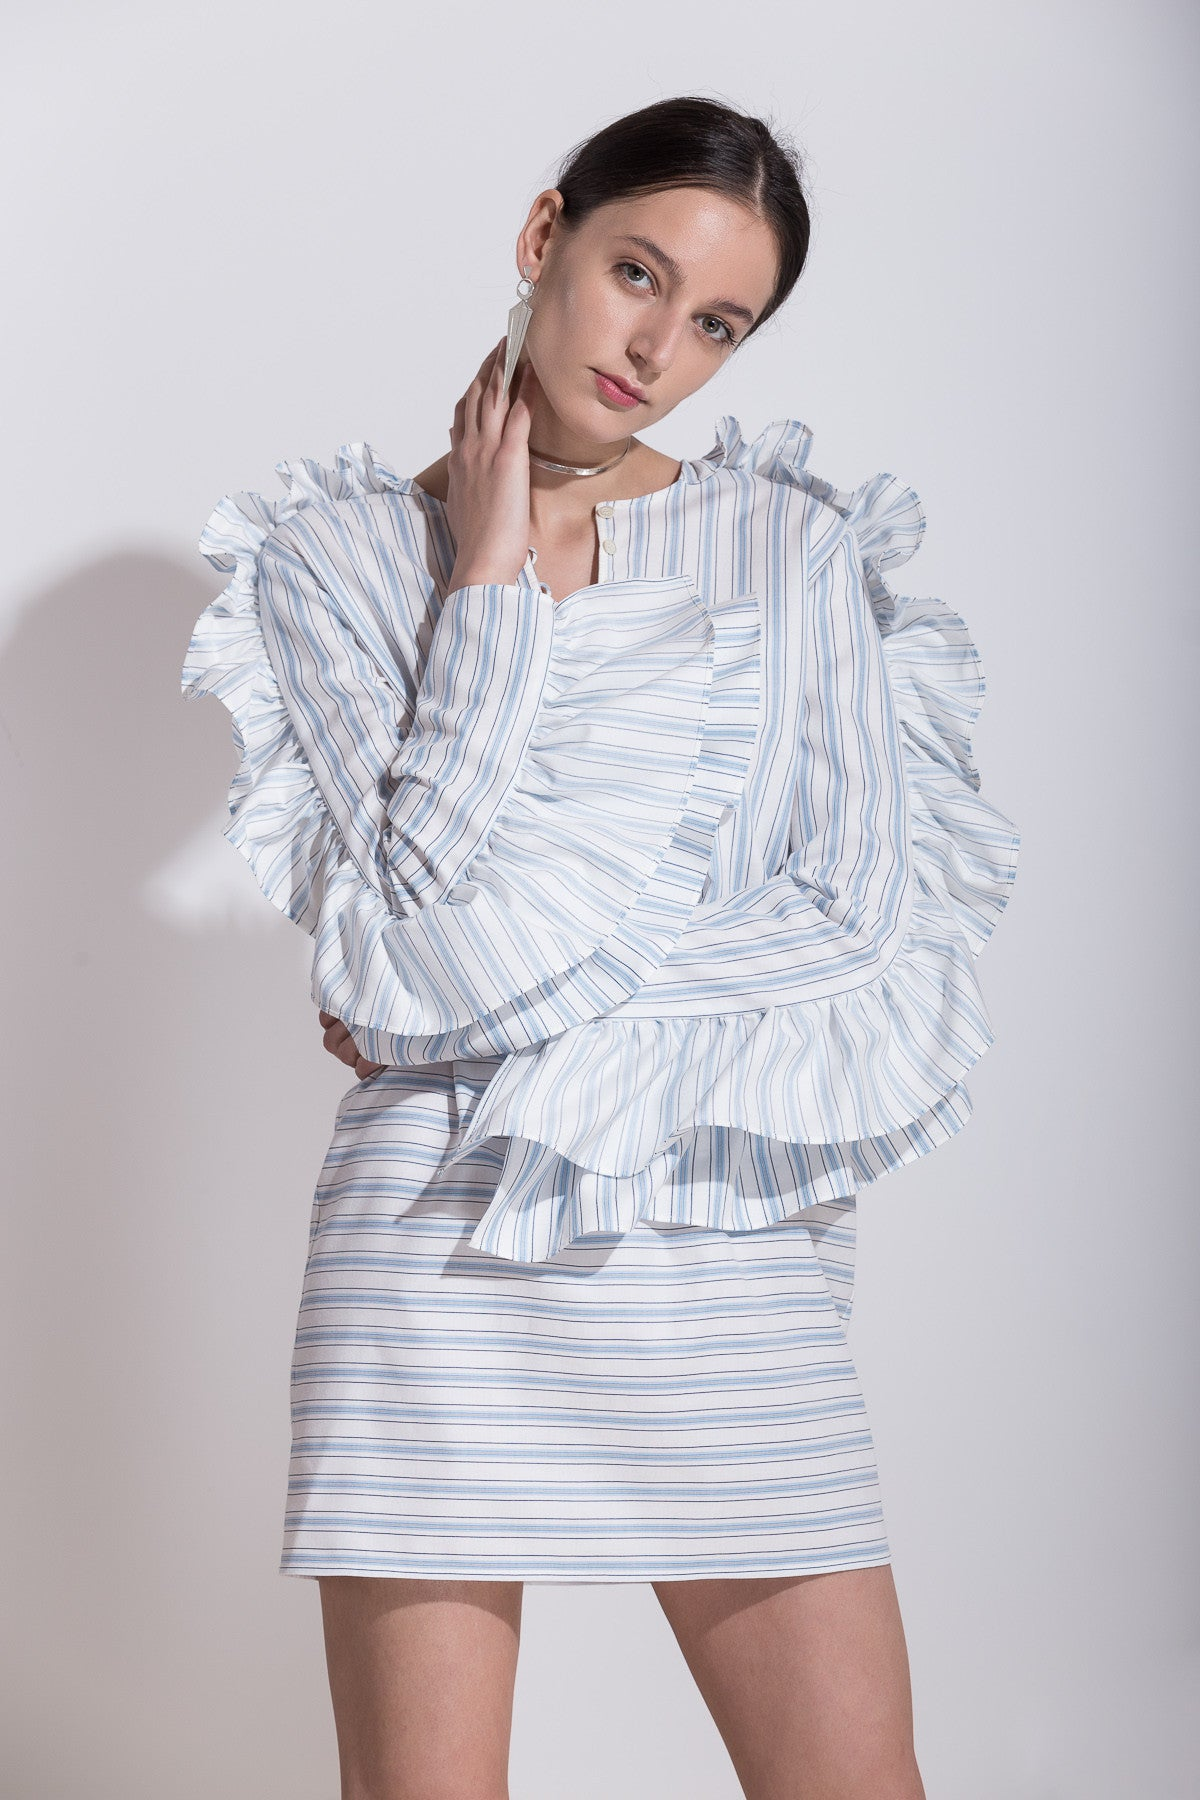 Ruffled Cotton Mini Dress, Dress, Andra Andreescu - Andra Andreescu Design